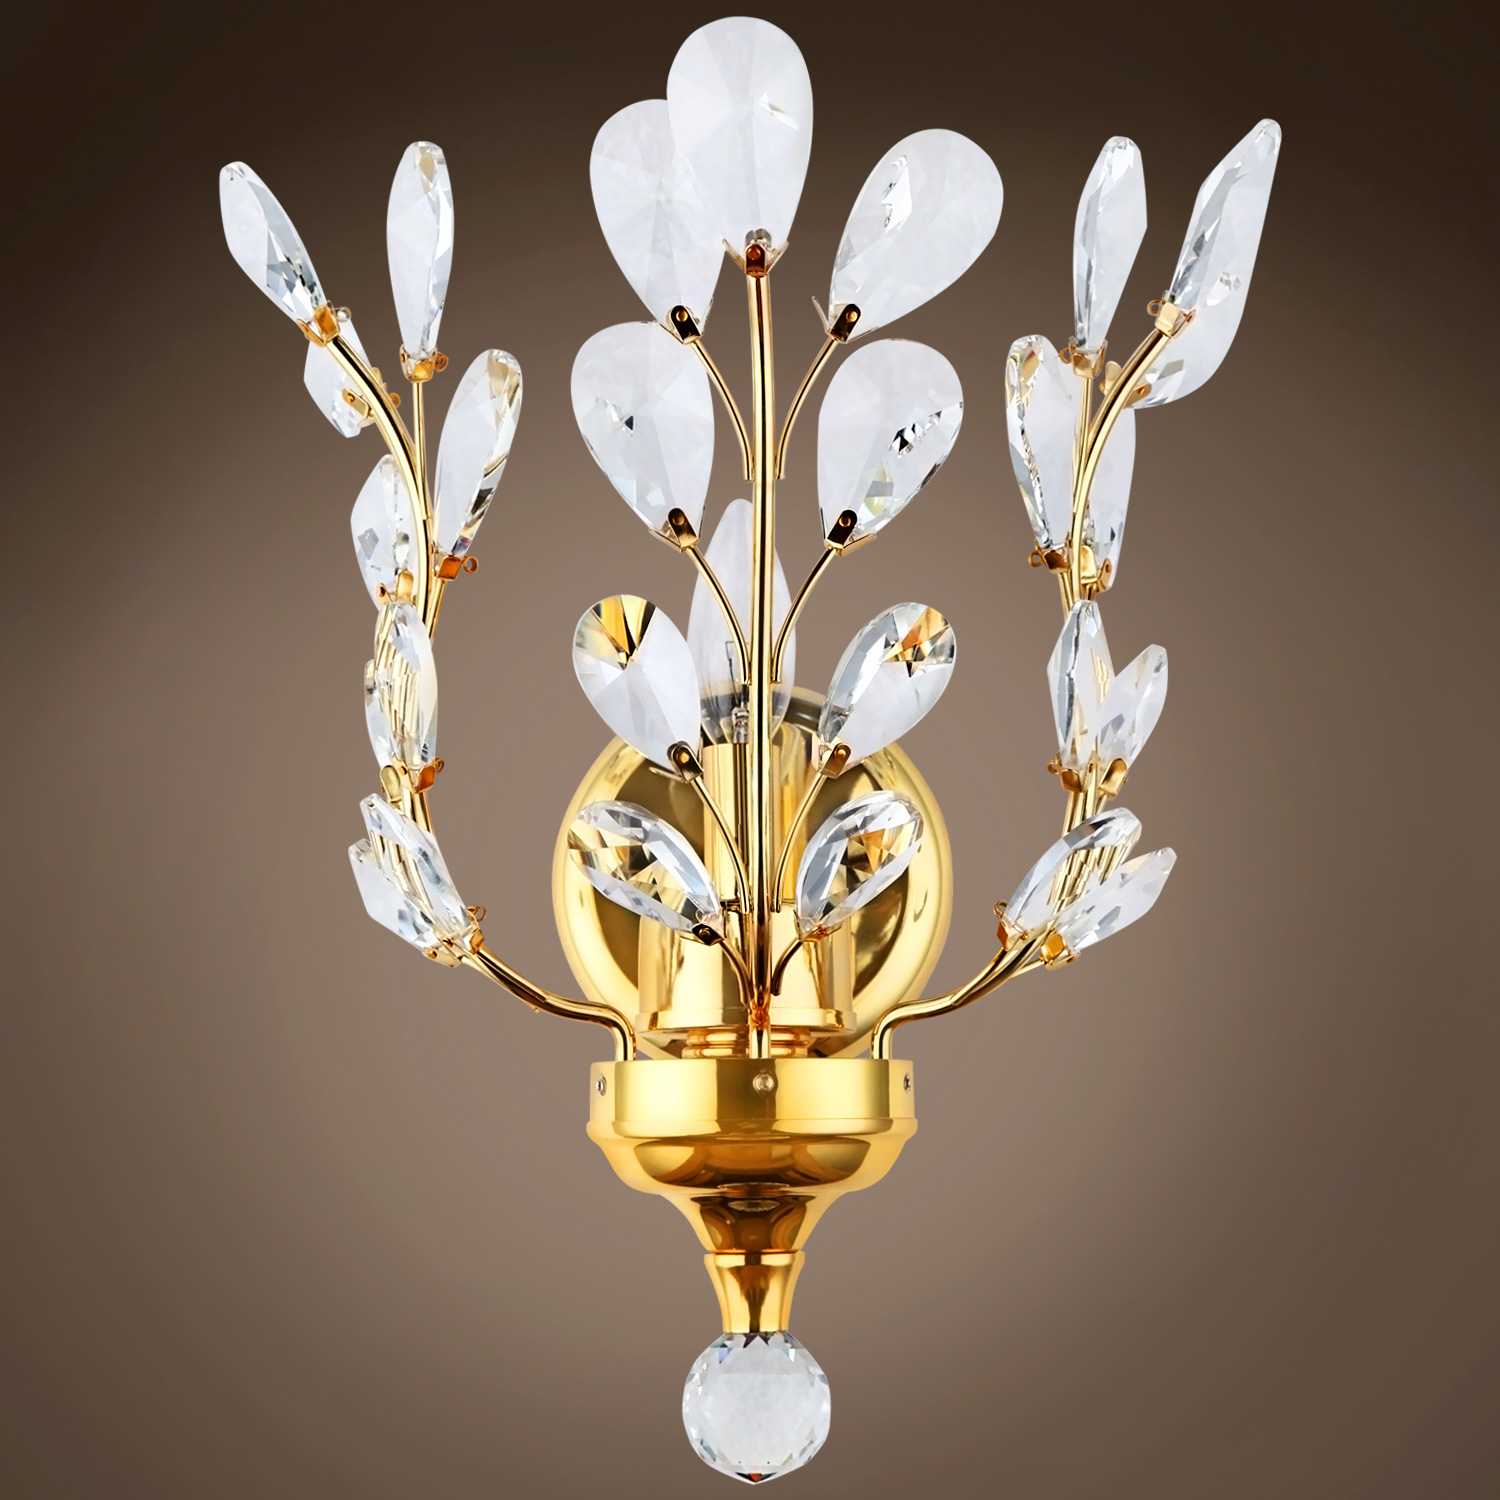 1 Light Wall Sconce in Gold Finish with European Crystals - Joshua Marshal 700864-001